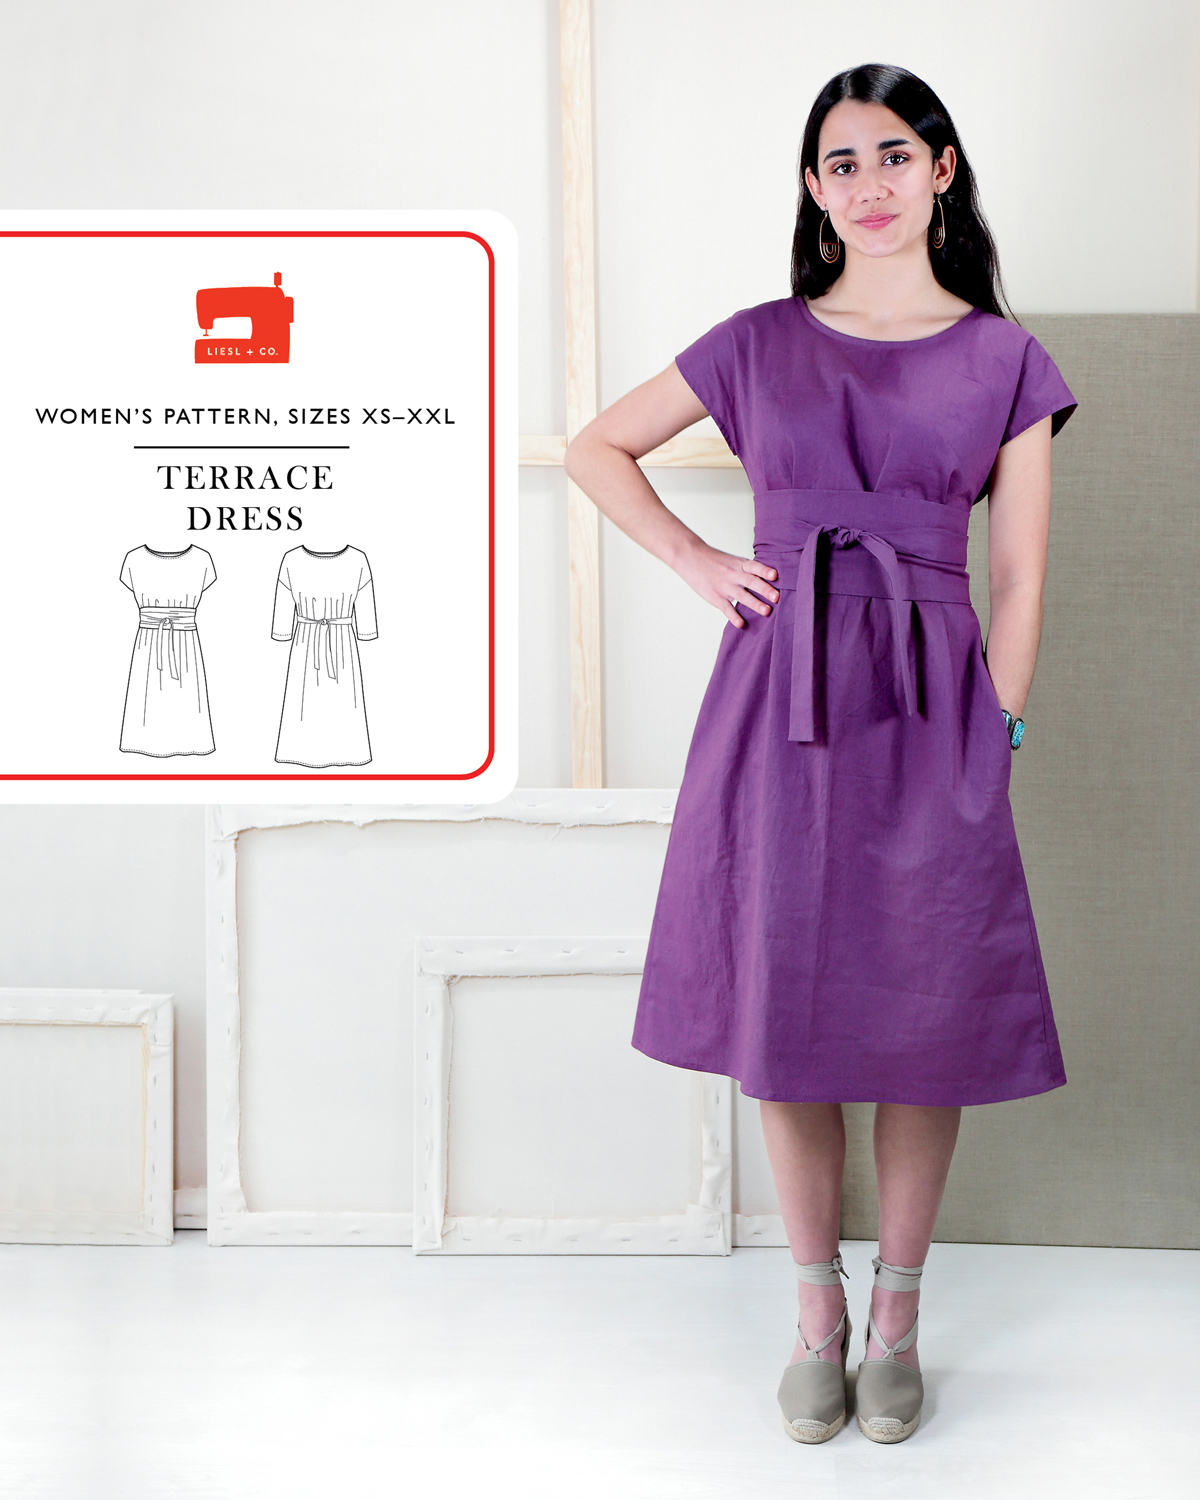 Introducing the Liesl + Co. Terrace Dress Sewing Pattern | Blog ...